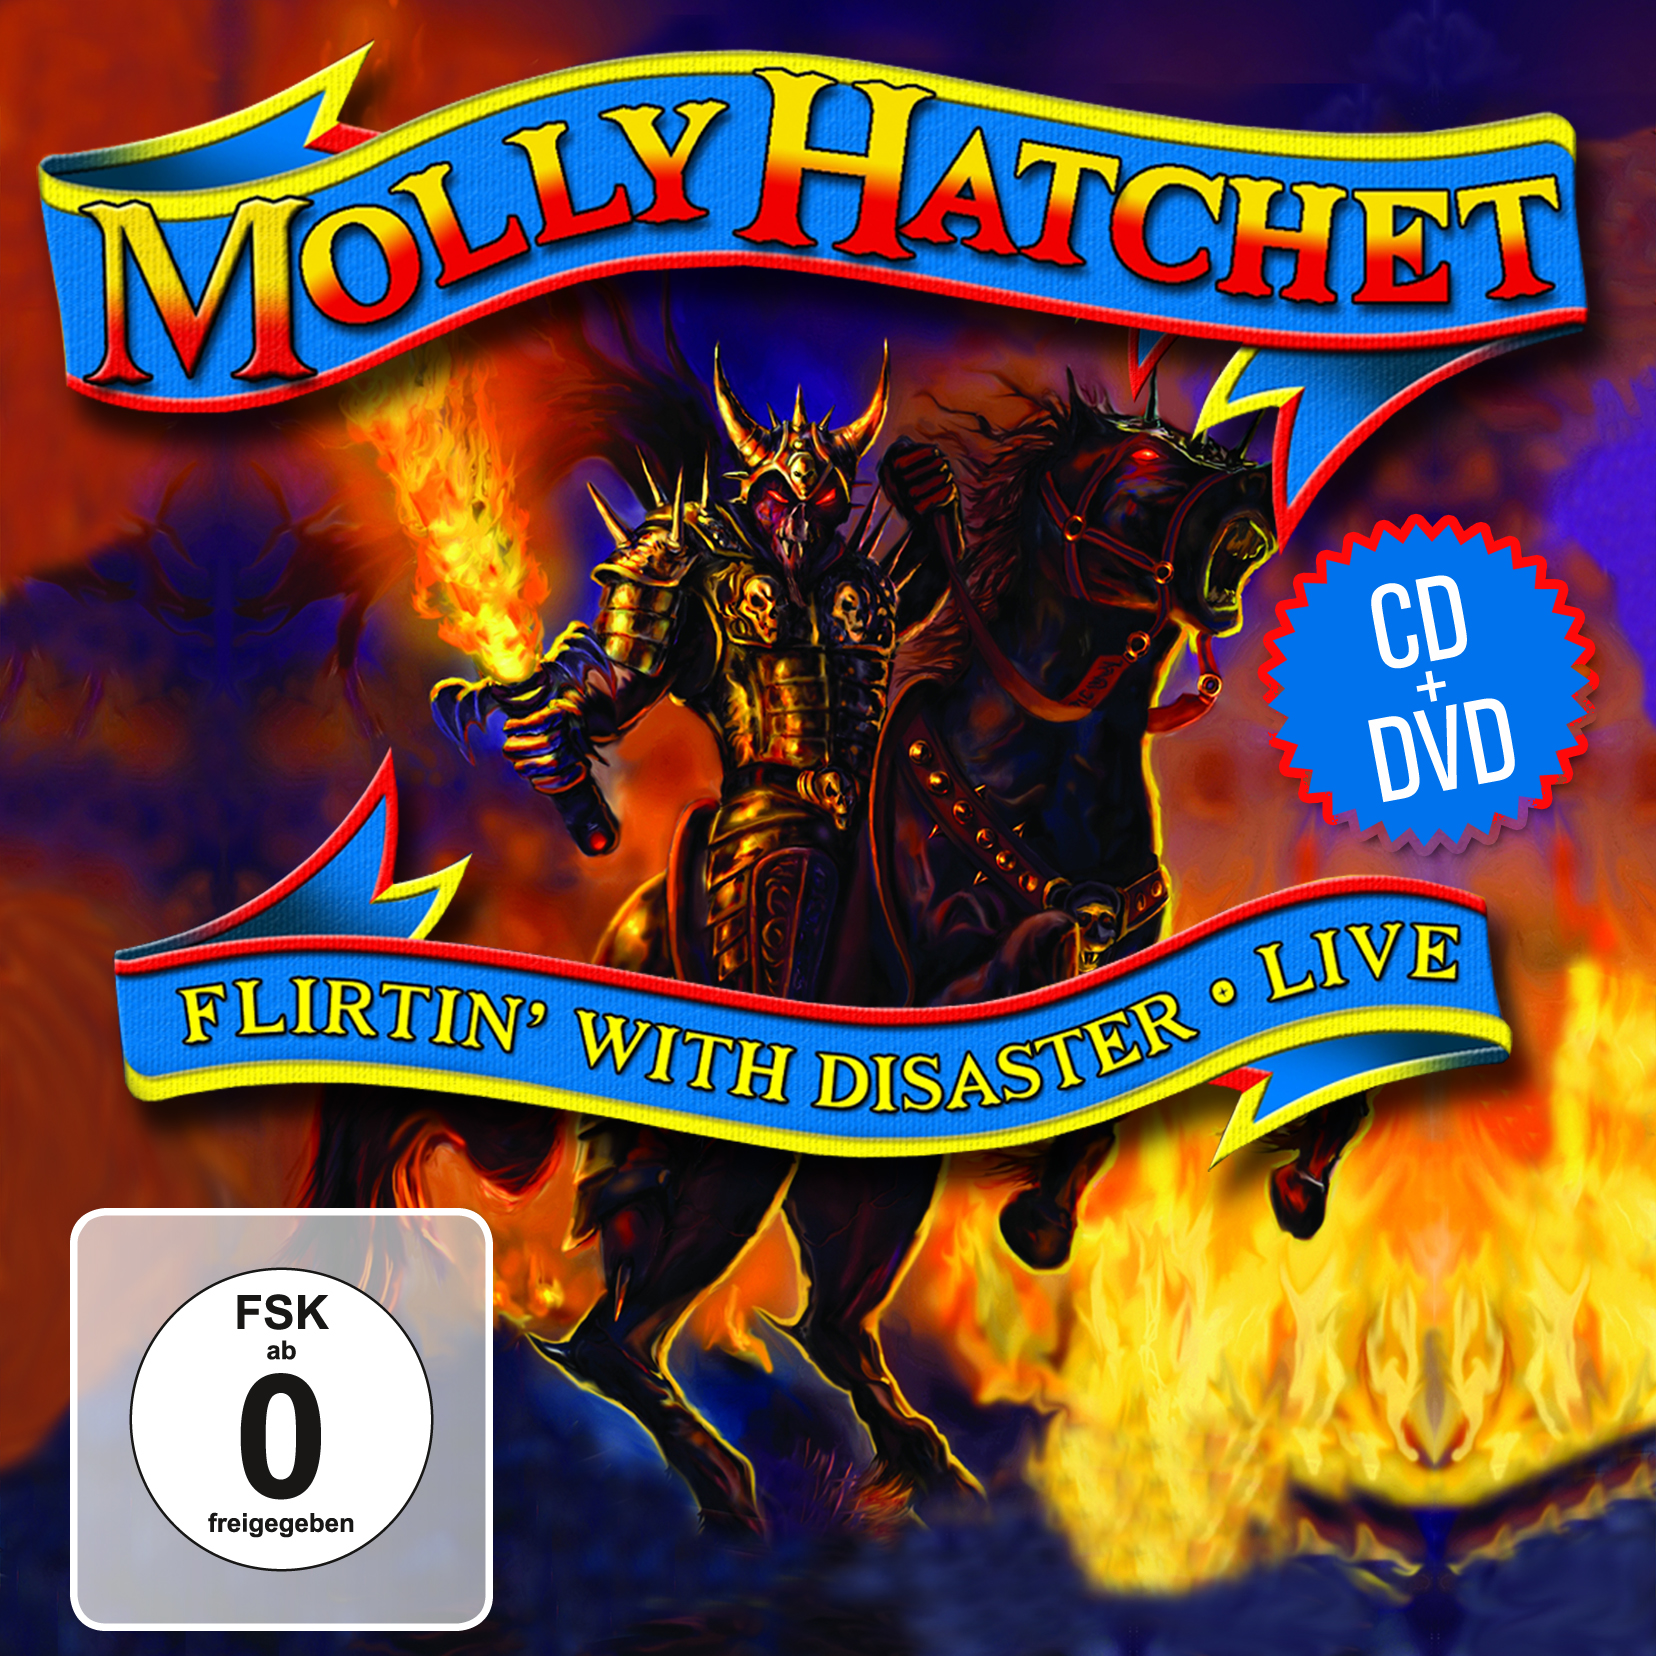 flirting with disaster molly hatchet bass cover video online video free